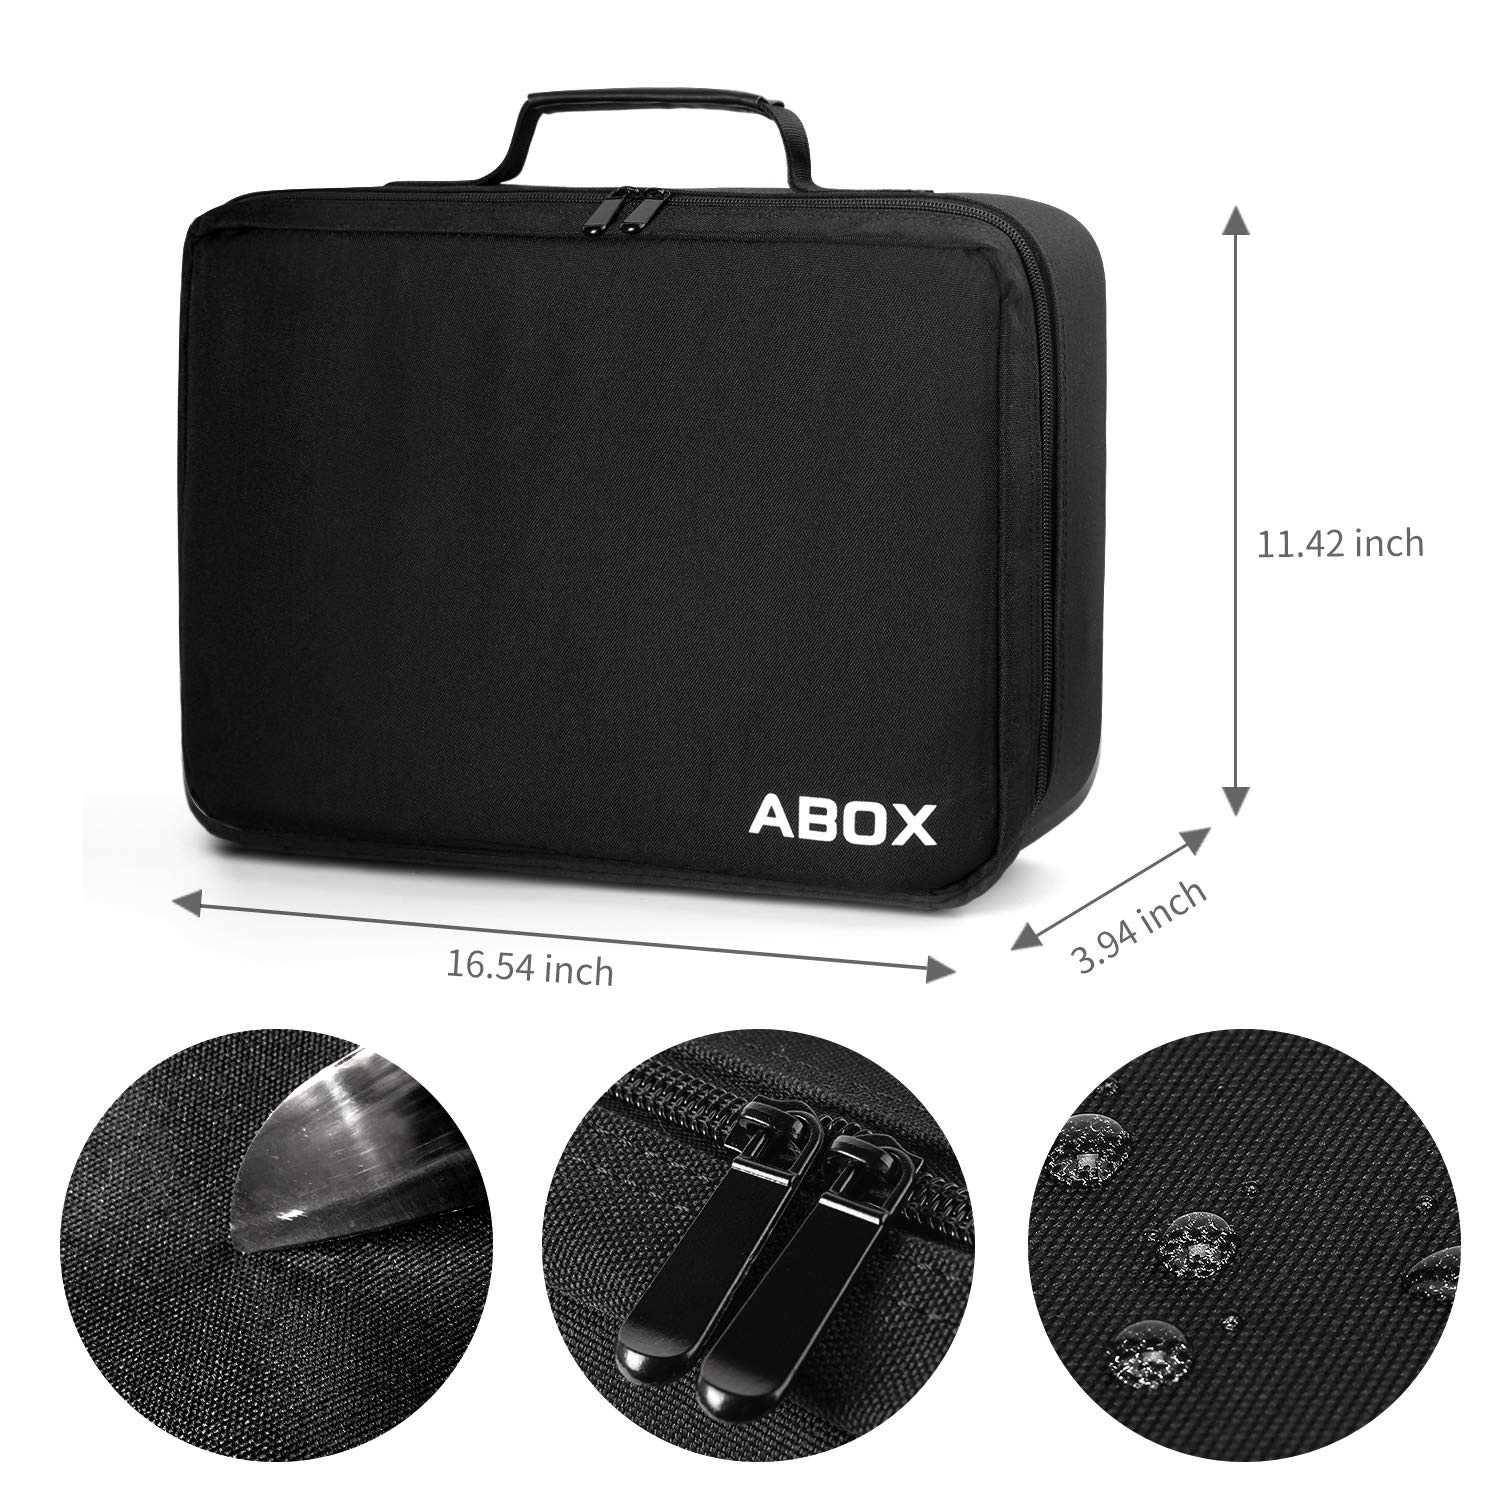 ABOX Carrying Bag fits ABOX A6 4000 Lumens LCD Full HD Multimedia Home Theater Video Projector-Dust Proof & Waterproof,Scratch-Resistant by GooBang Doo (Image #3)